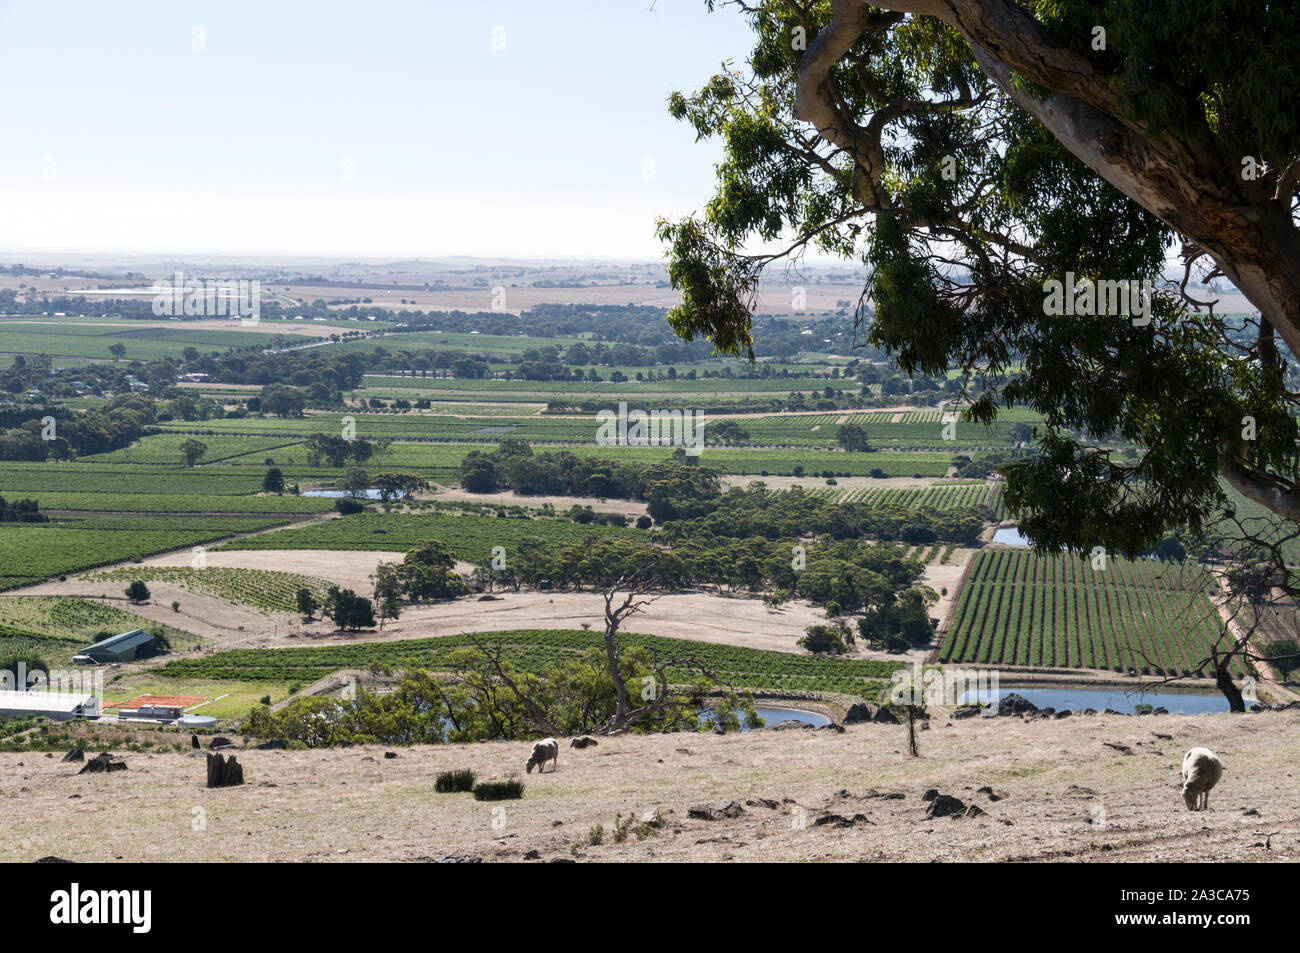 A panoramic view of thousands of acres of vines from Mengler Hill Lookout in the Barossa Valley wine region in South Australia.   There are about 150 Stock Photo